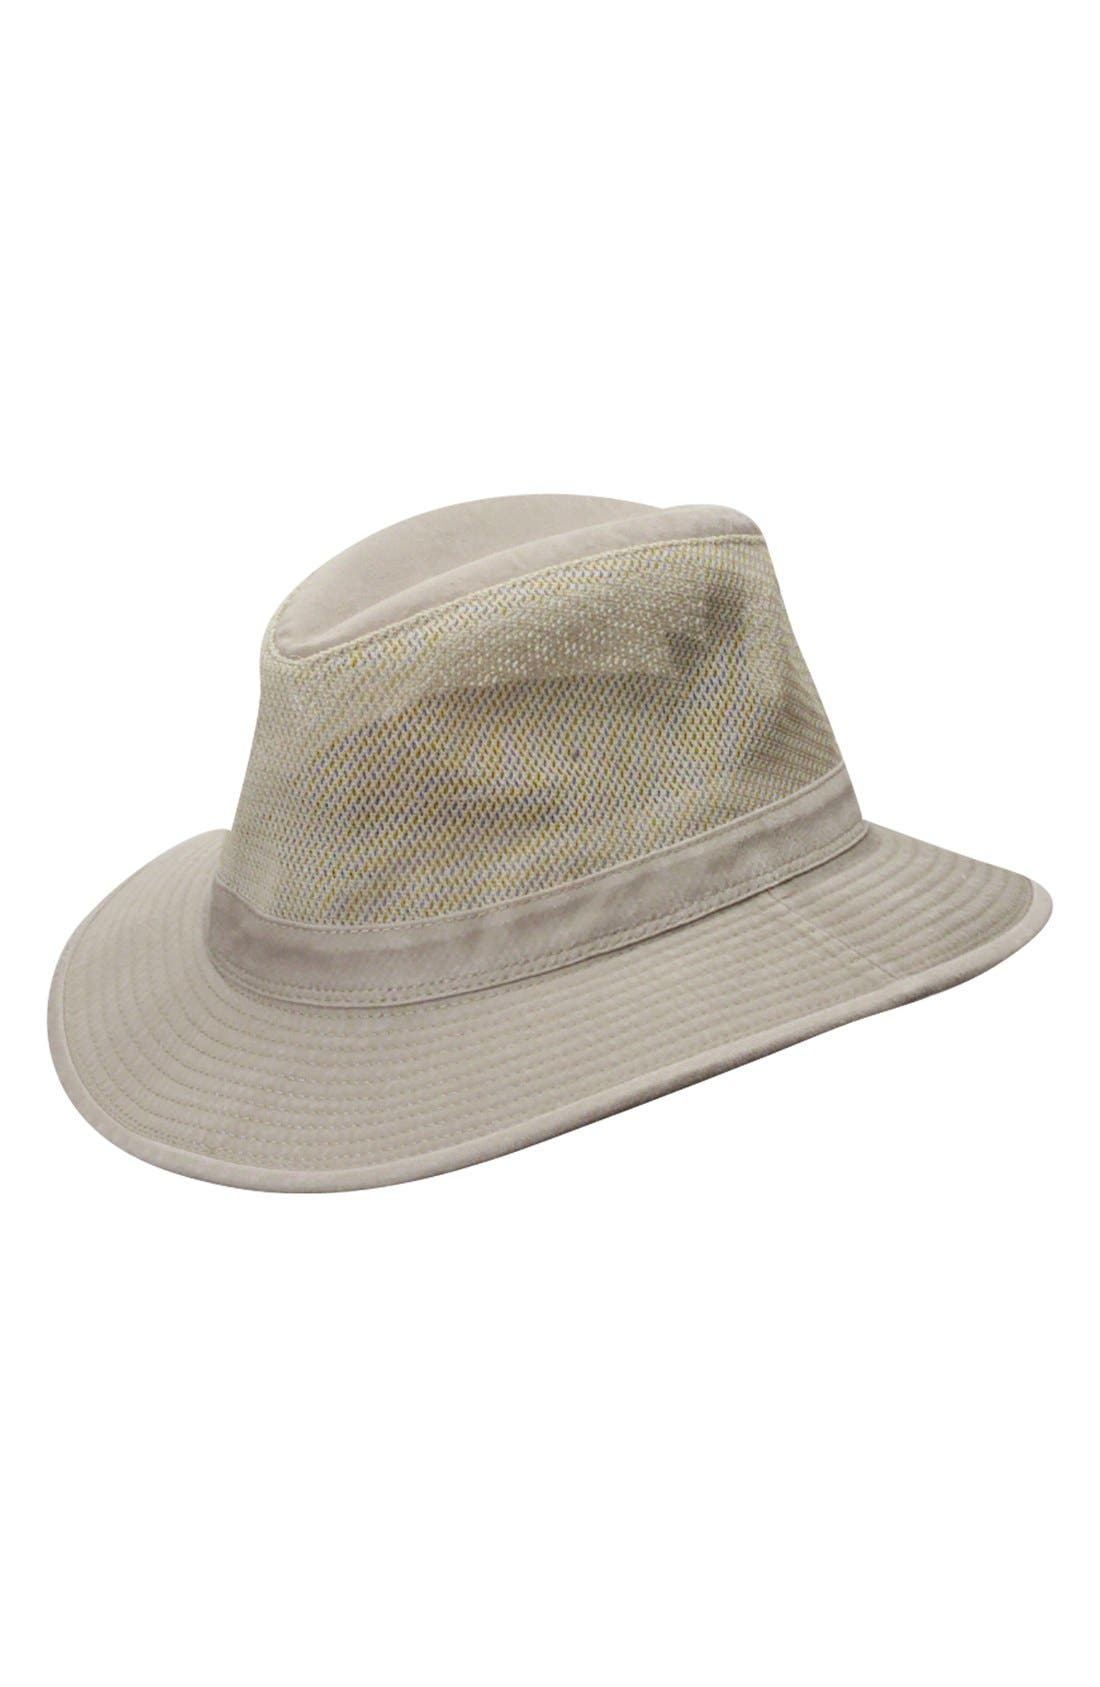 Washed Twill & Mesh Safari Hat,                             Main thumbnail 1, color,                             Khaki